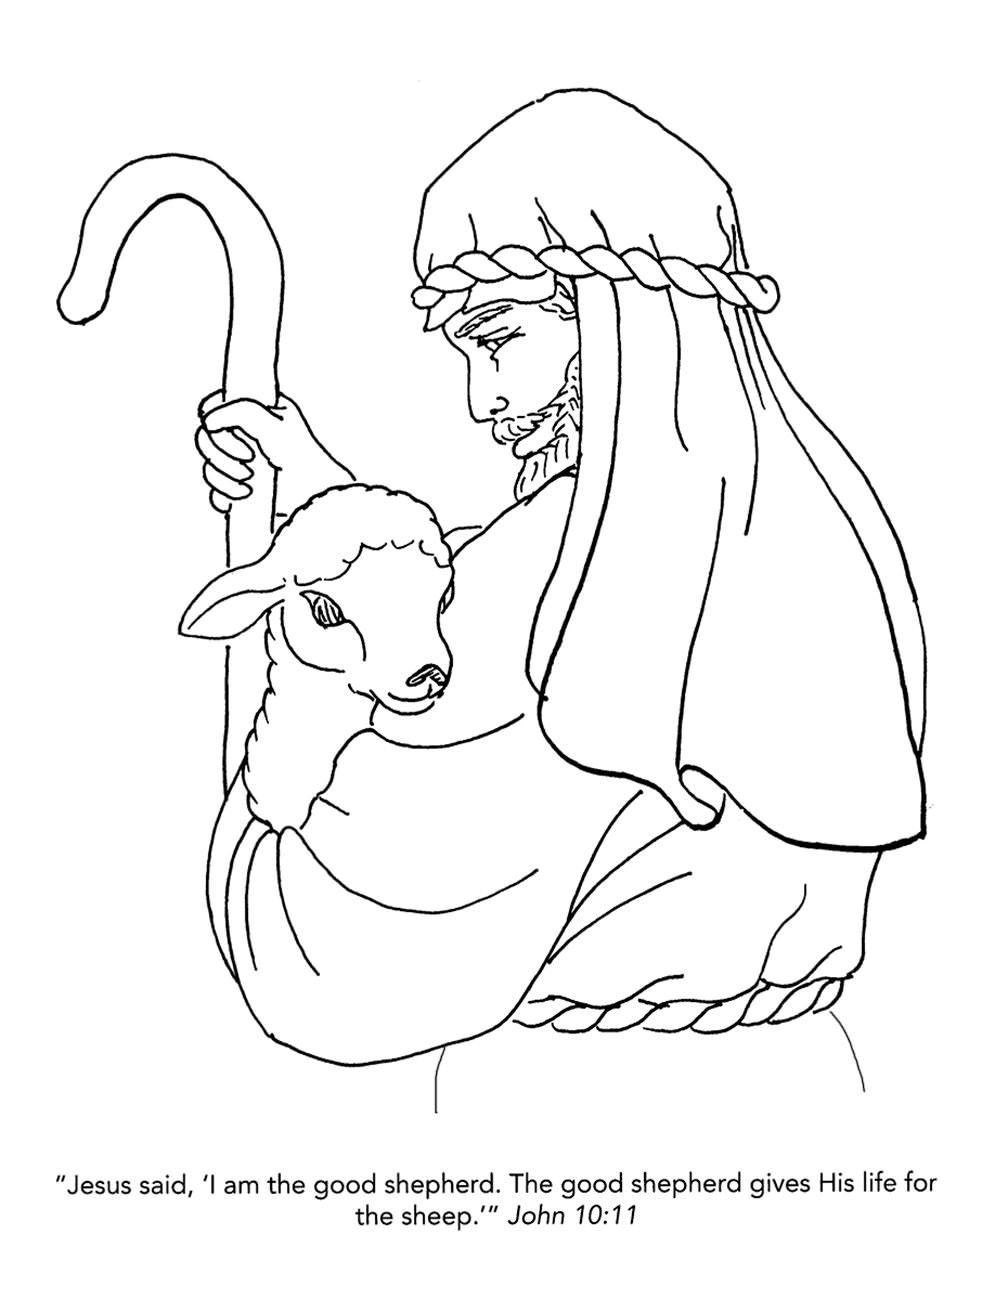 Free Christian Coloring Pages for Kids, Children, and ...